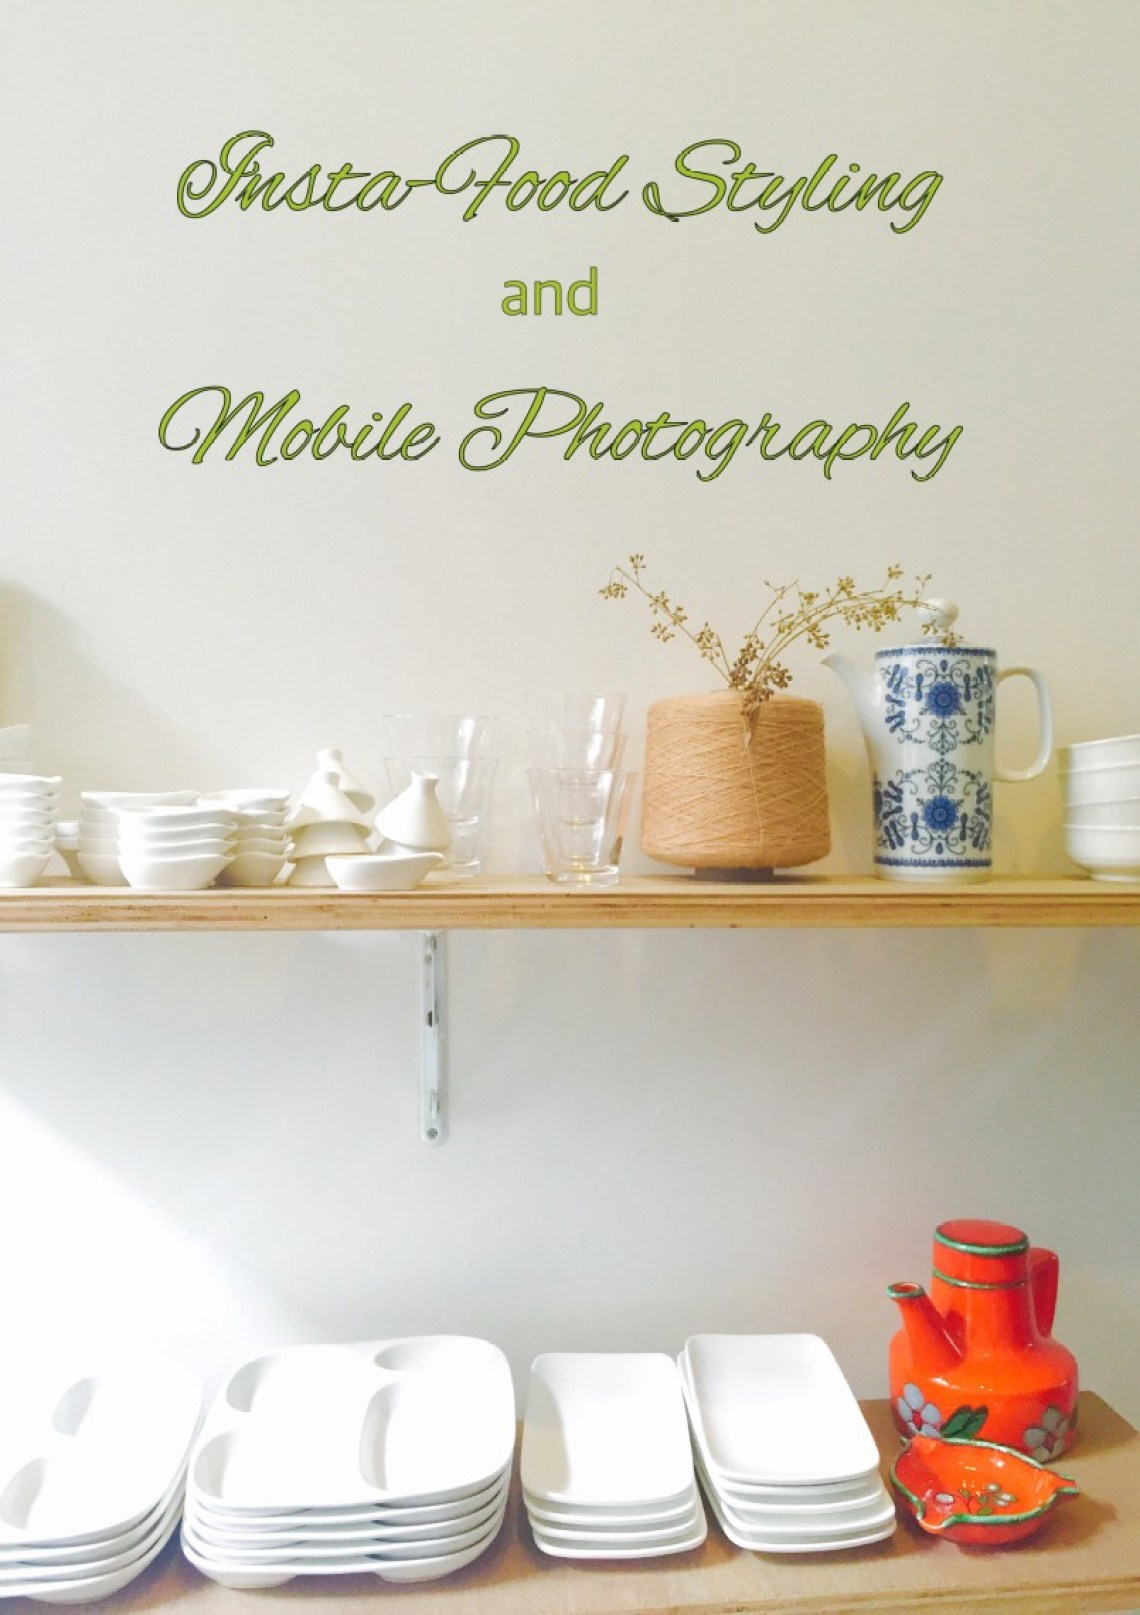 Insta-Food Styling and Mobile Photography